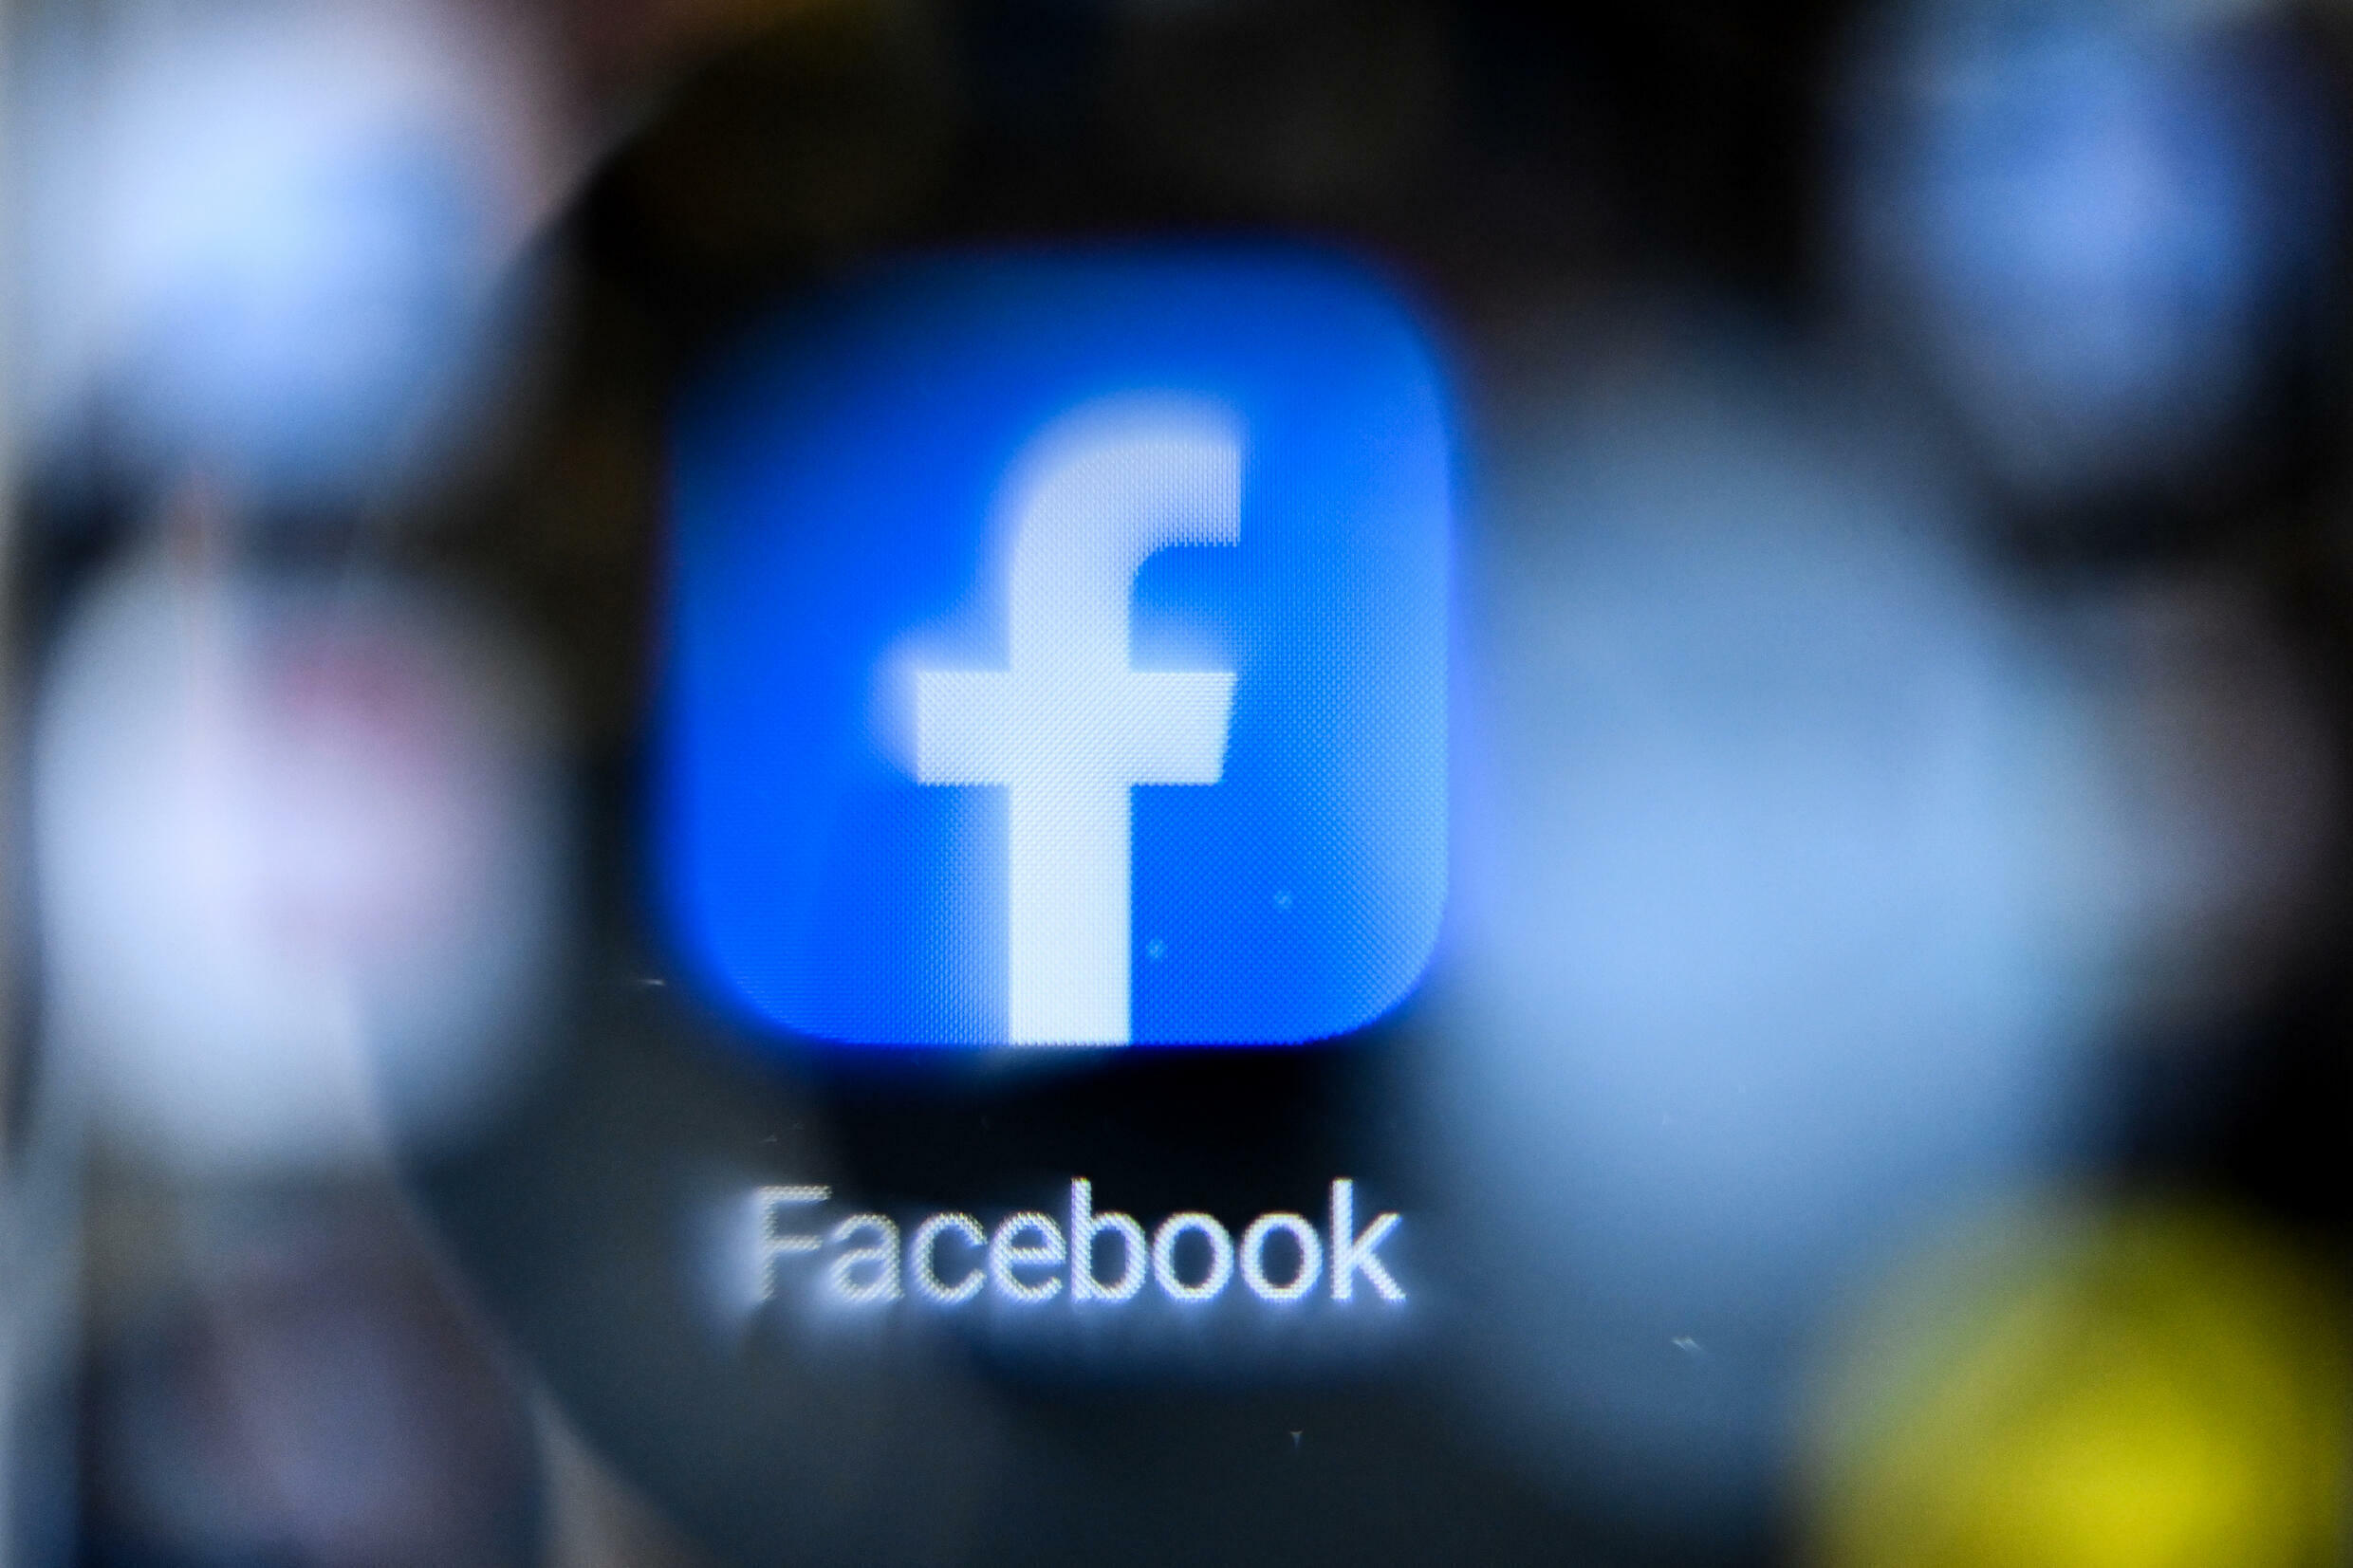 Facebook CEO Mark Zuckerberg has been a leading voice in Silicon Valley hype around the idea of the metaverse, which would blur the lines between the physical world and the digital one